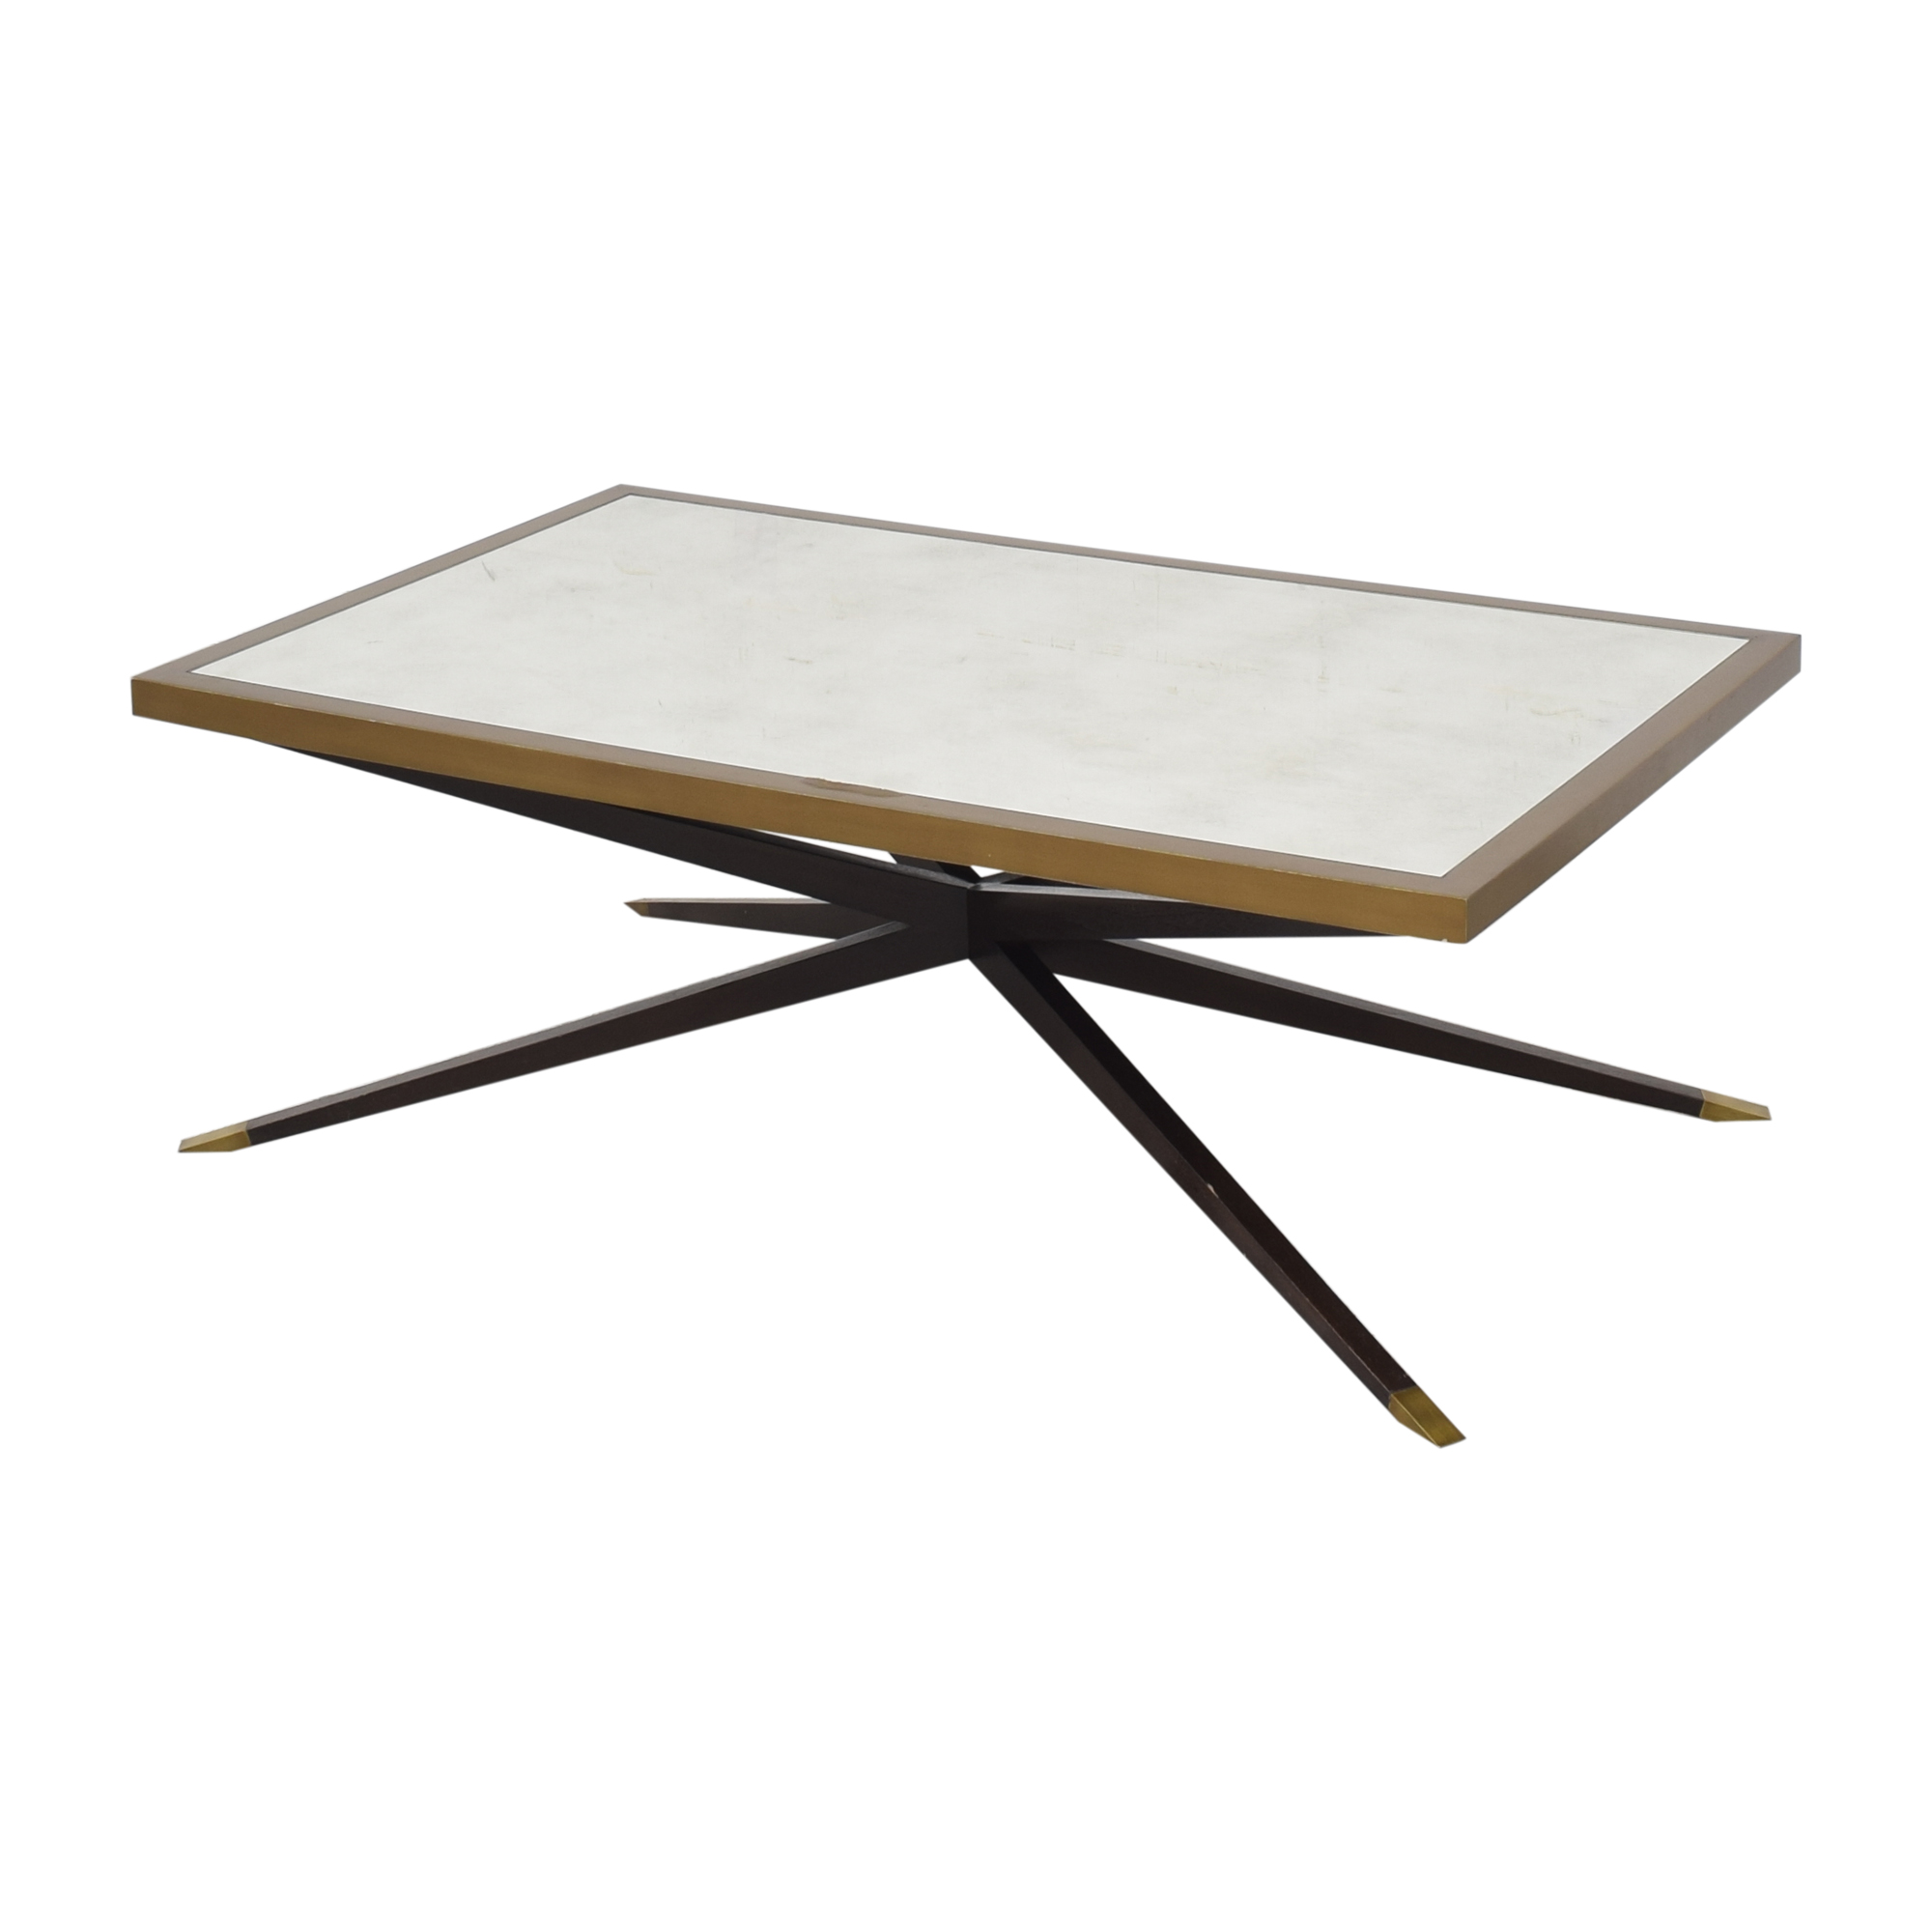 shop Mr. Brown London Mr. Brown London Atlantis Coffee Table online